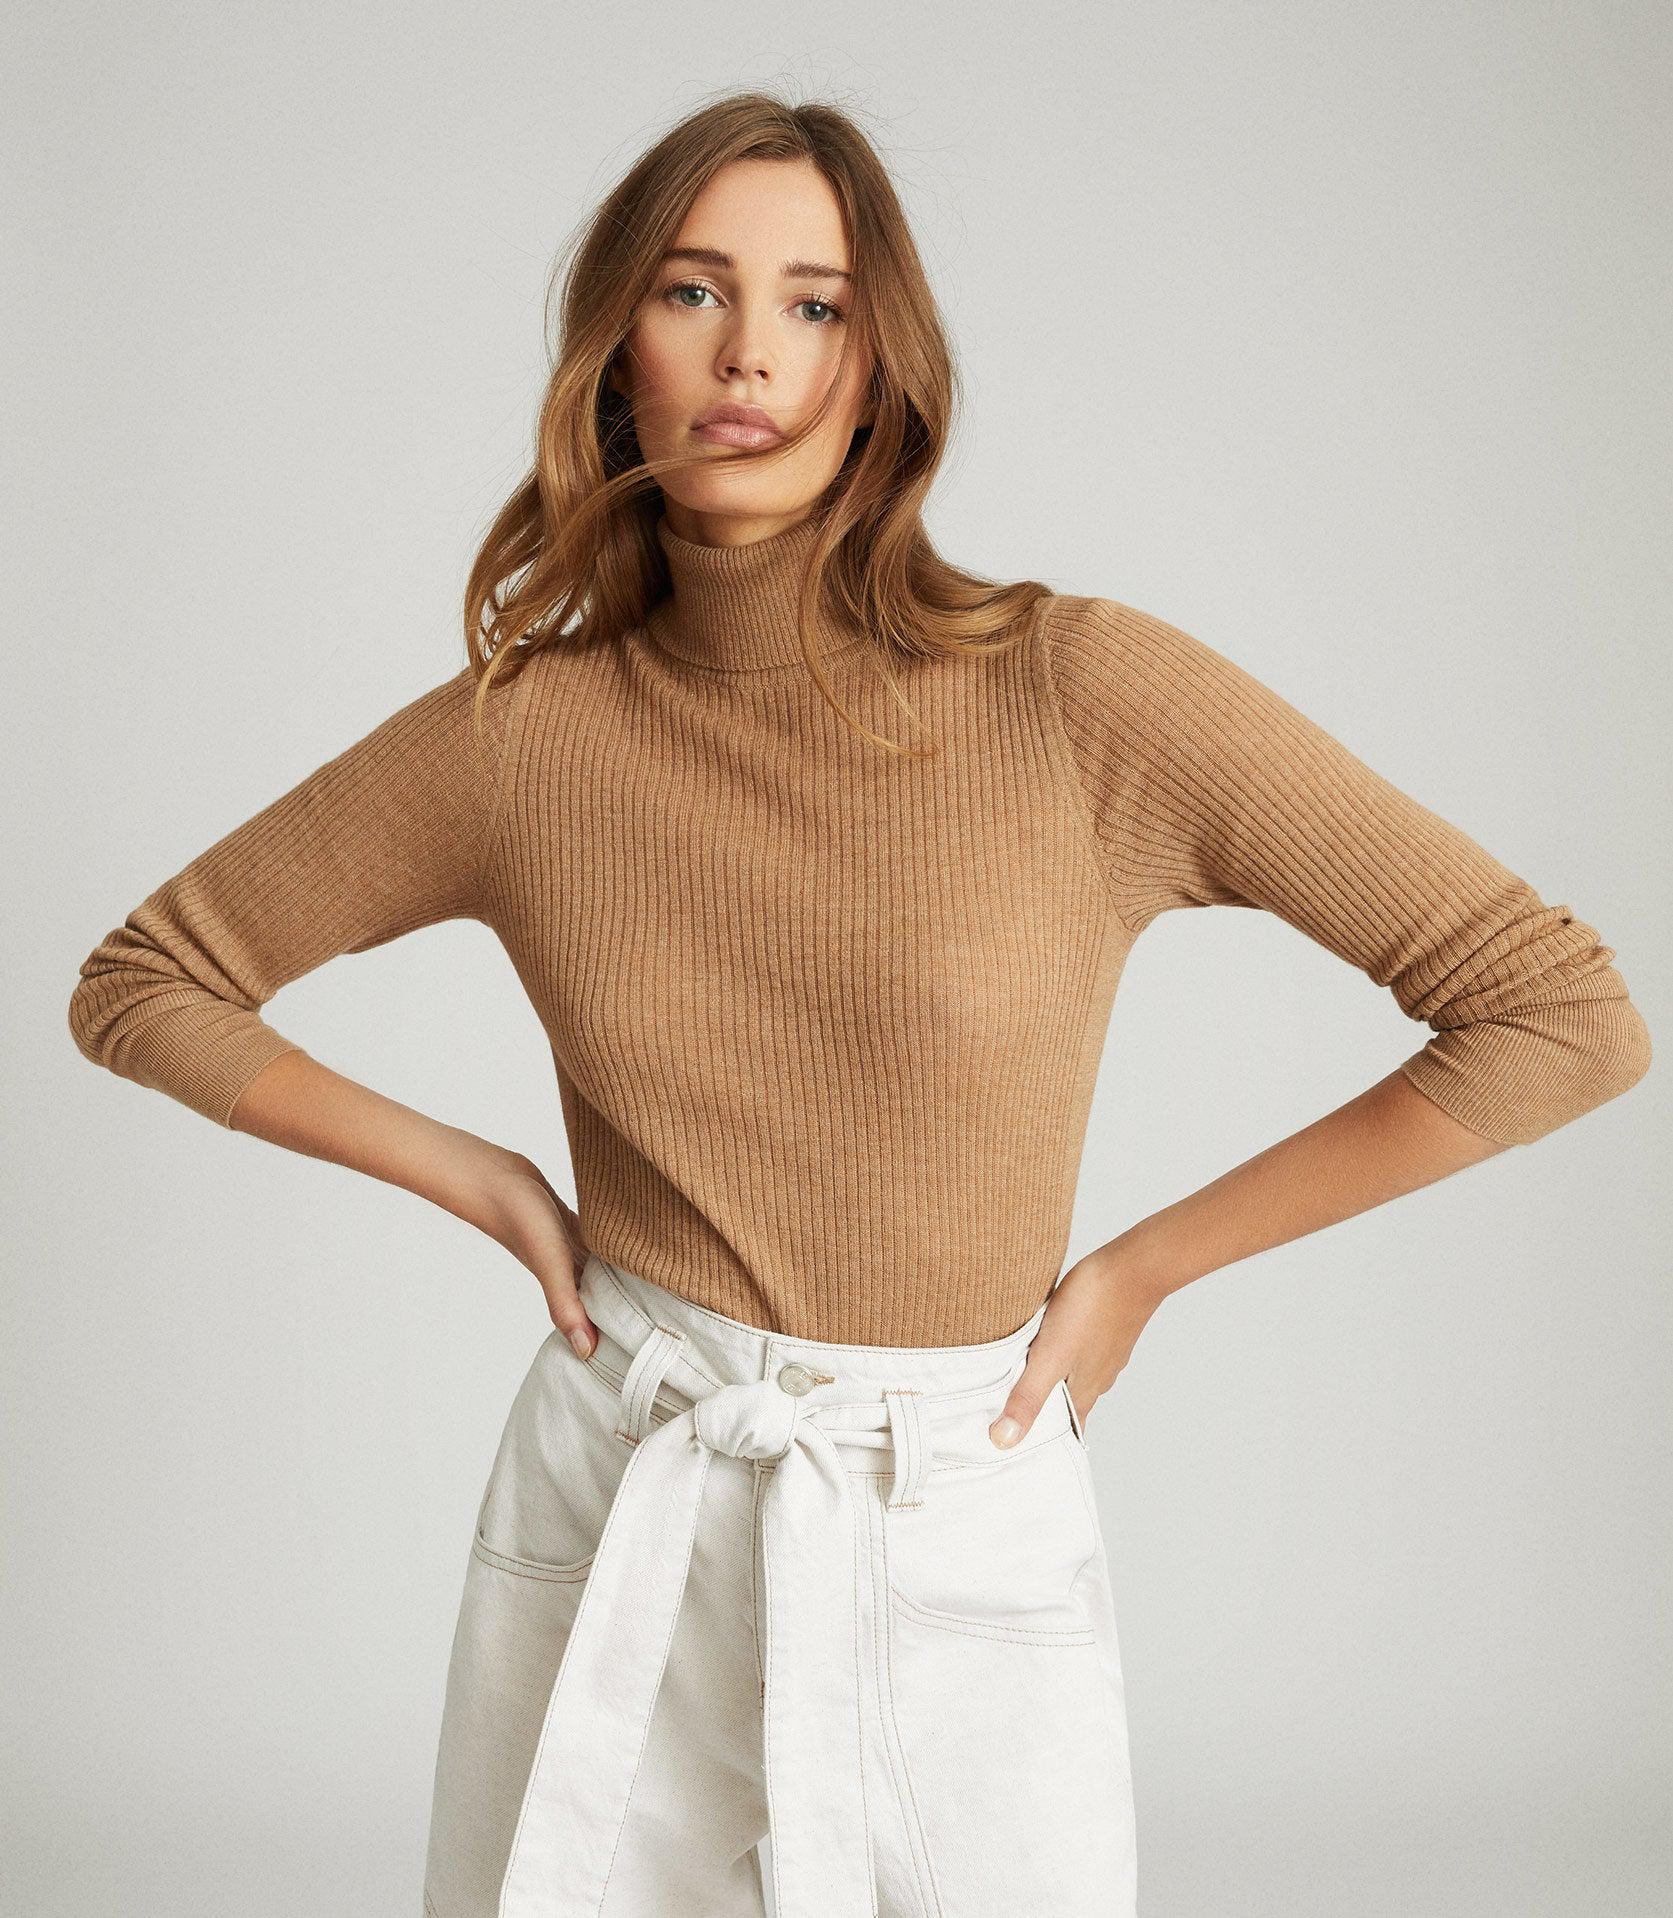 SOPHIE - KNITTED ROLL NECK TOP